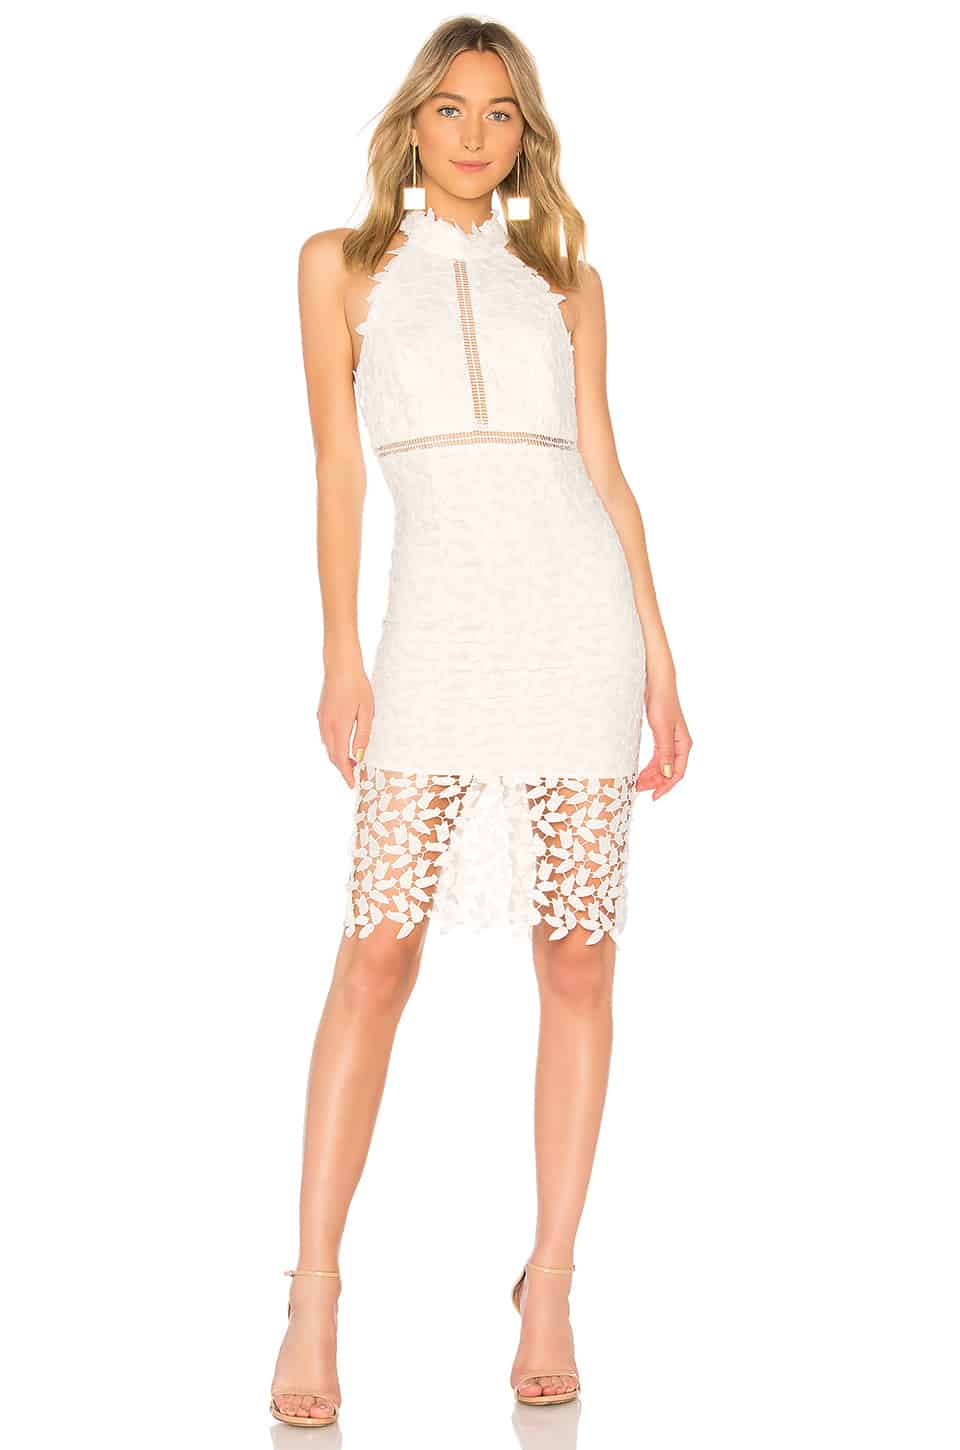 Short Ivory Lace Dress with High Neck and Sheer Details